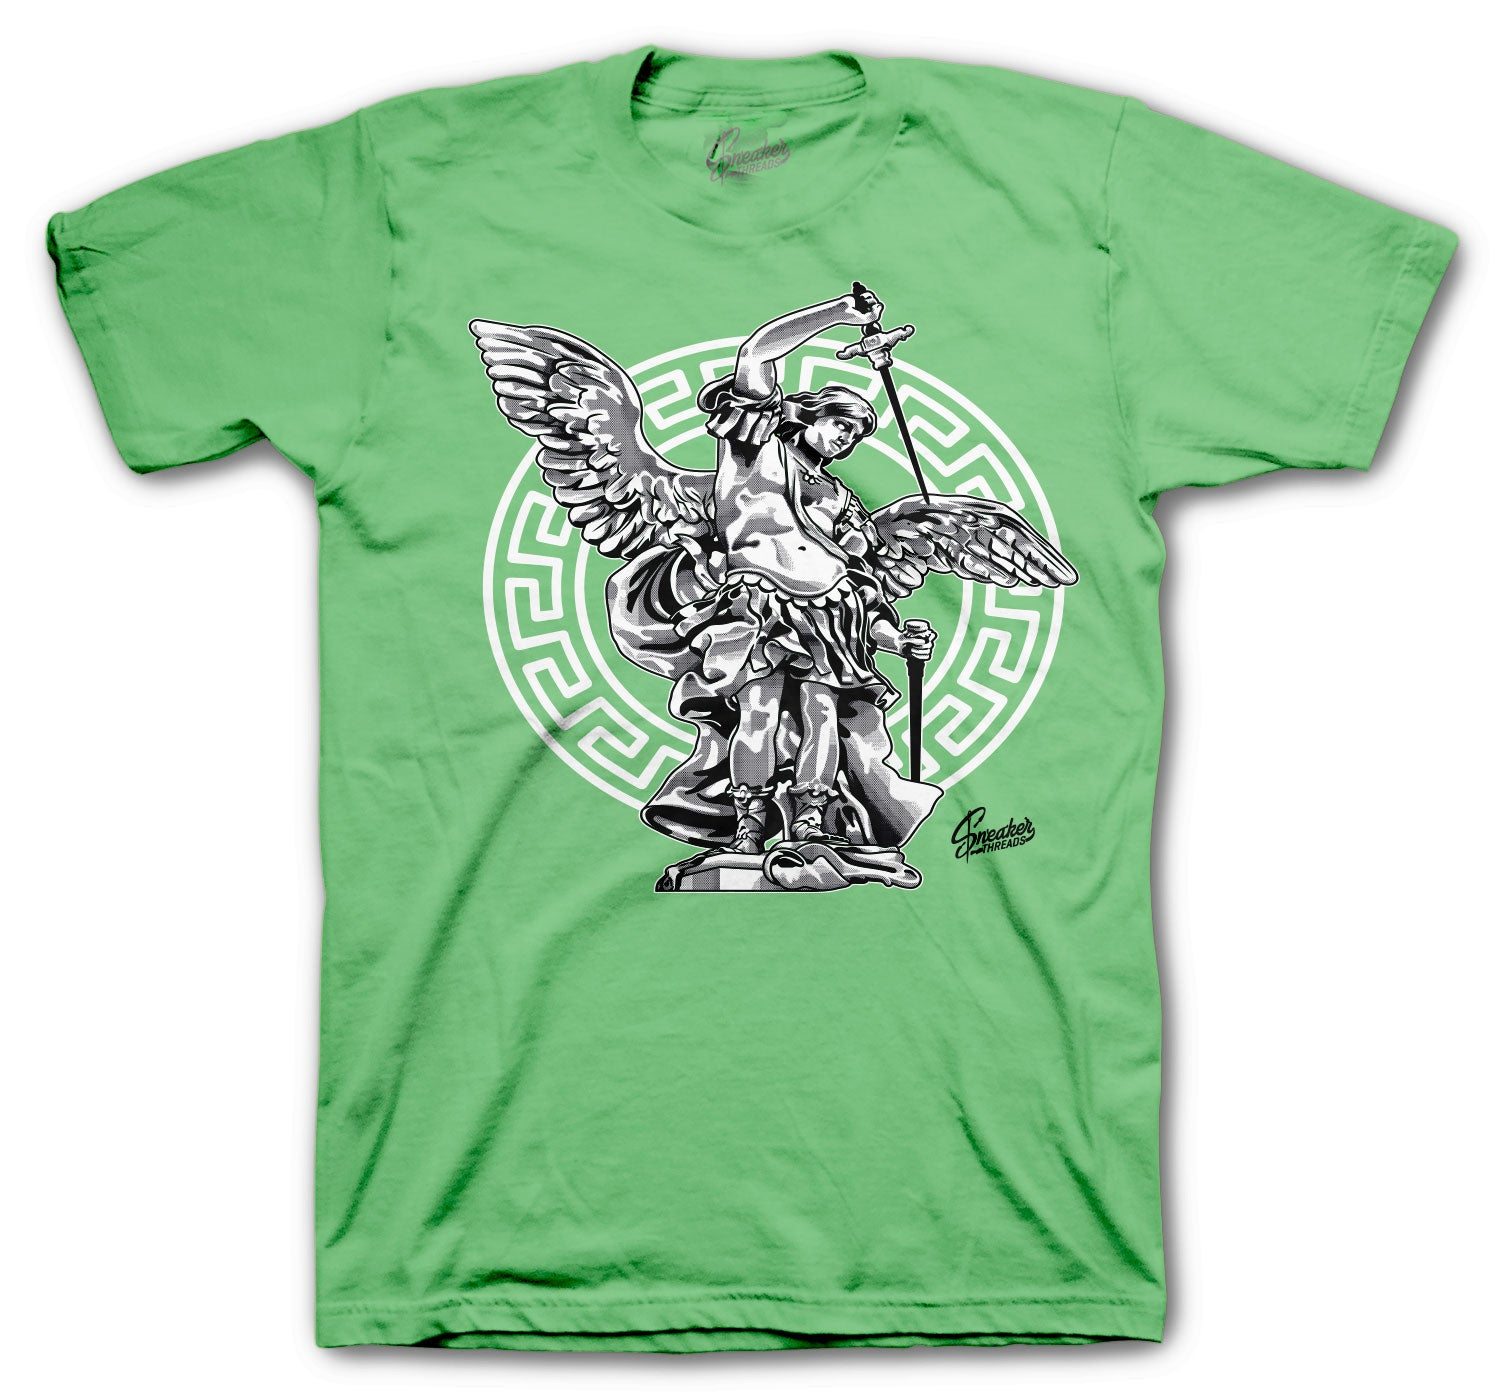 Jordan 1 Zen Green Saint Michael Shirt